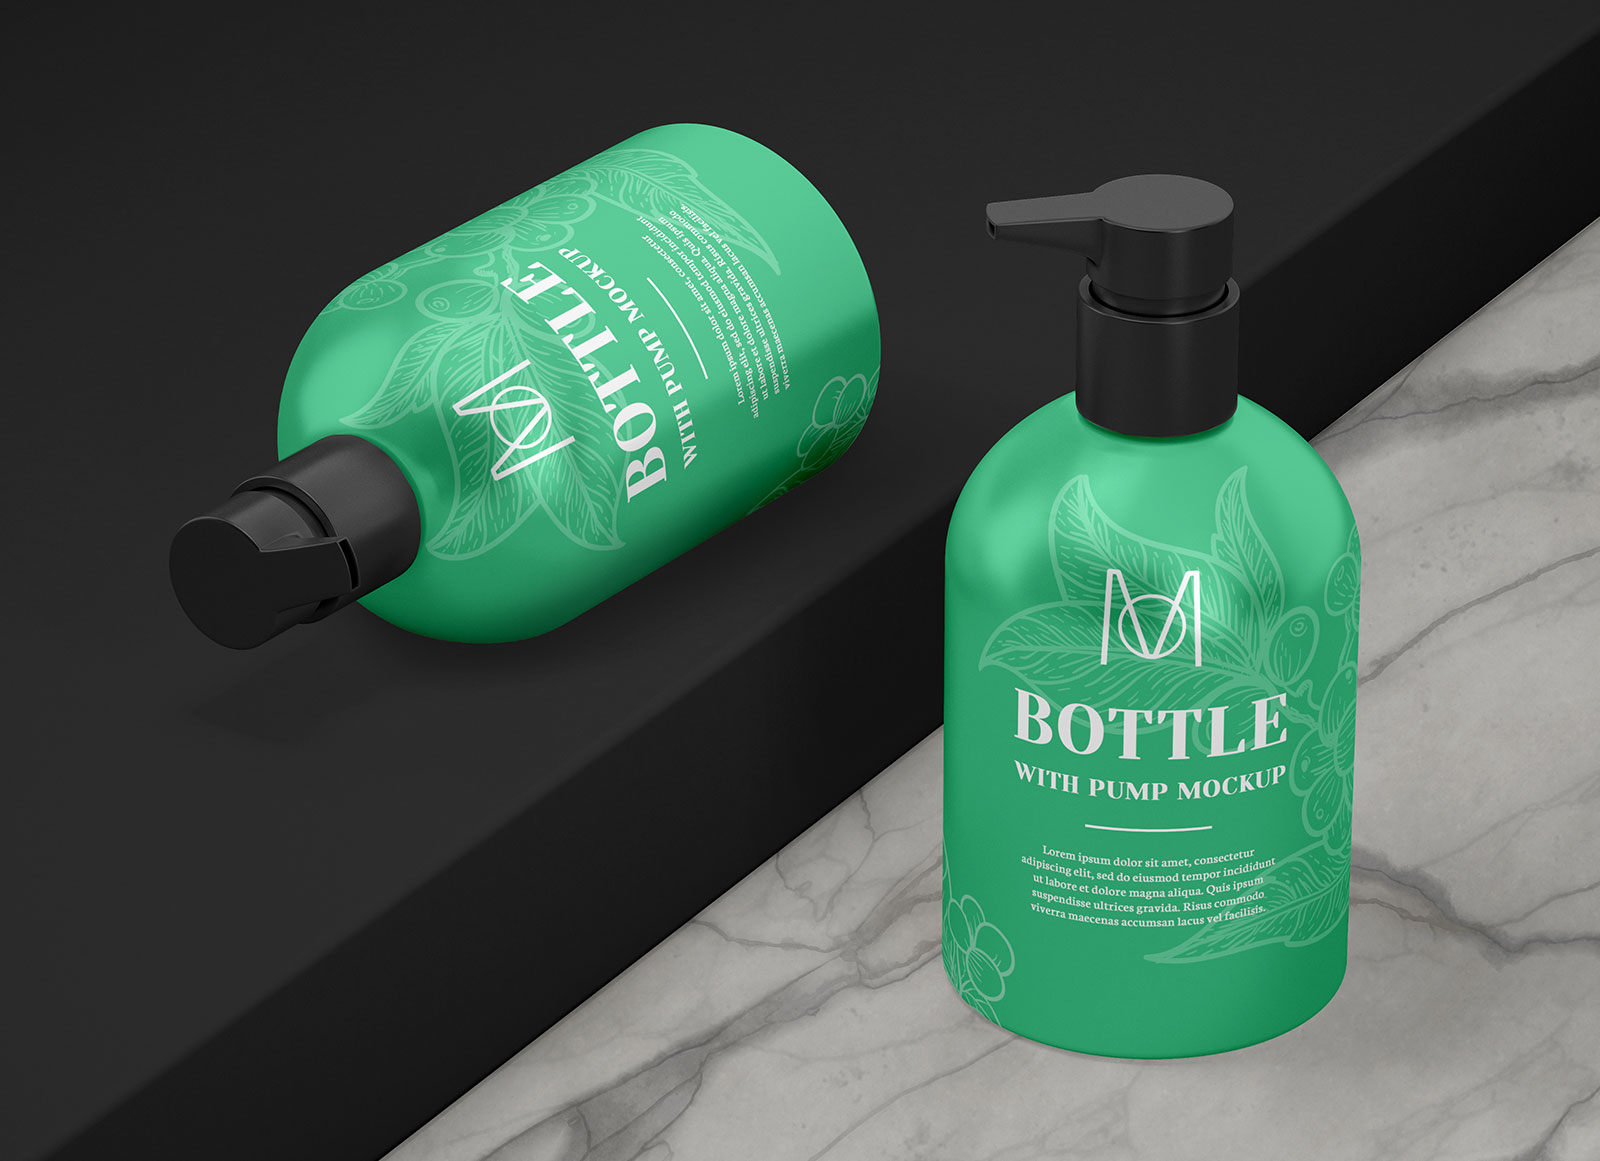 Free-Plastic-Dispenser-Pump-Bottle-Mockup-PSD-Set-2